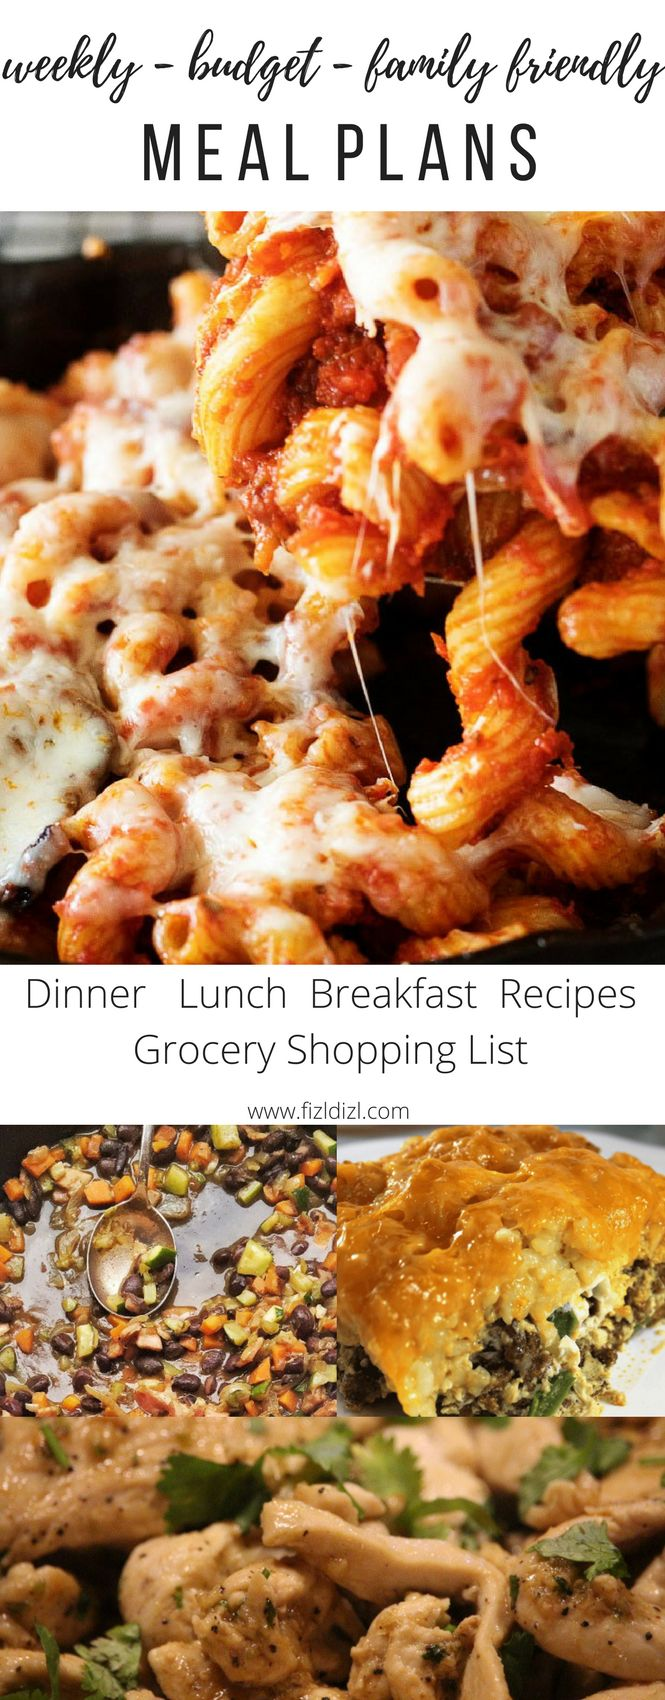 Simply, family, budget friendly weekly meal plans you and your family will love. Each contains five dinners and one breakfast as well as lots of lunch ideas for the youngest to oldest in your home. We do all the work for you - did we mention we include an editable grocery list with all of the ingredients on it already for all the meals? Happy dinner time, happy family time!